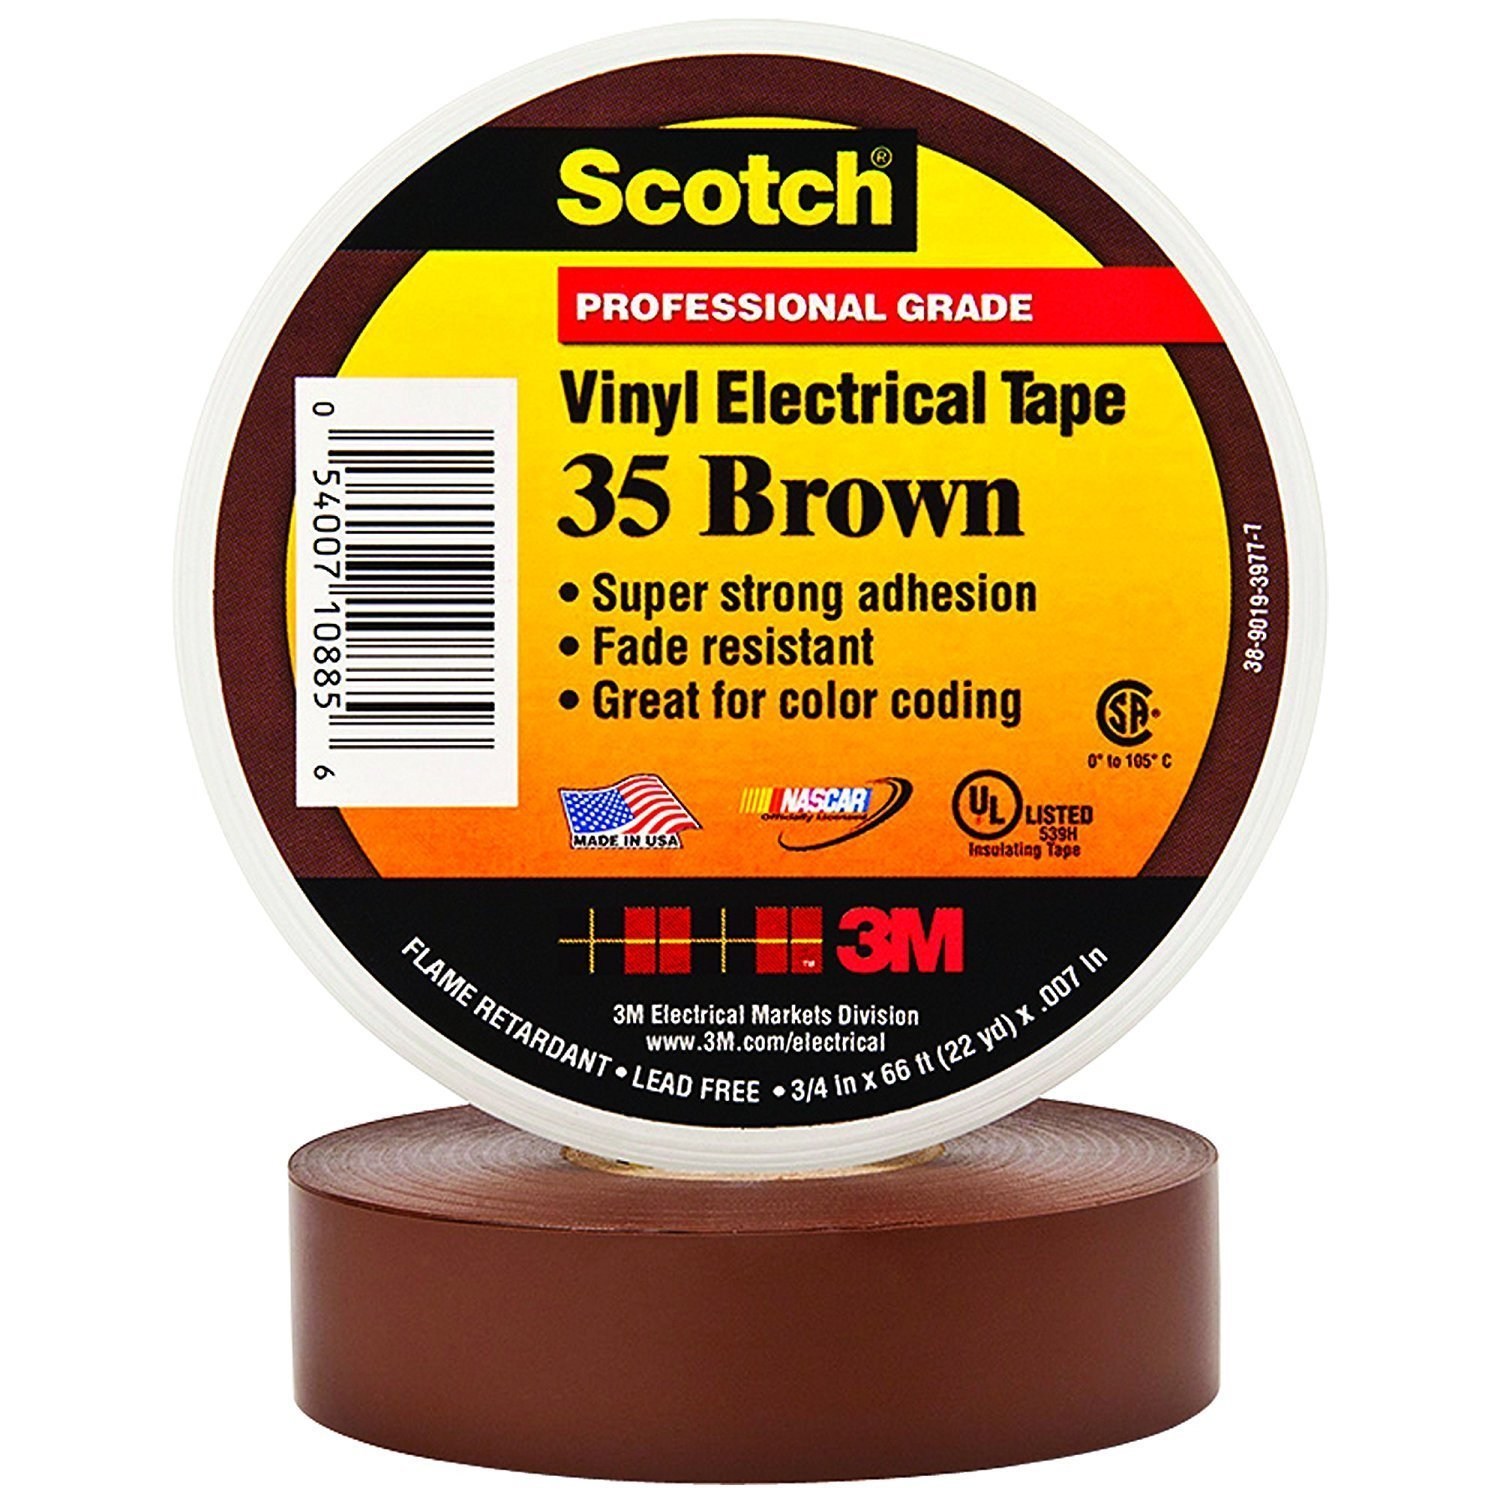 3M Latest item Scotch 35 Color Super sale Coding Electrical Tape 12 Degree 105 0 C to